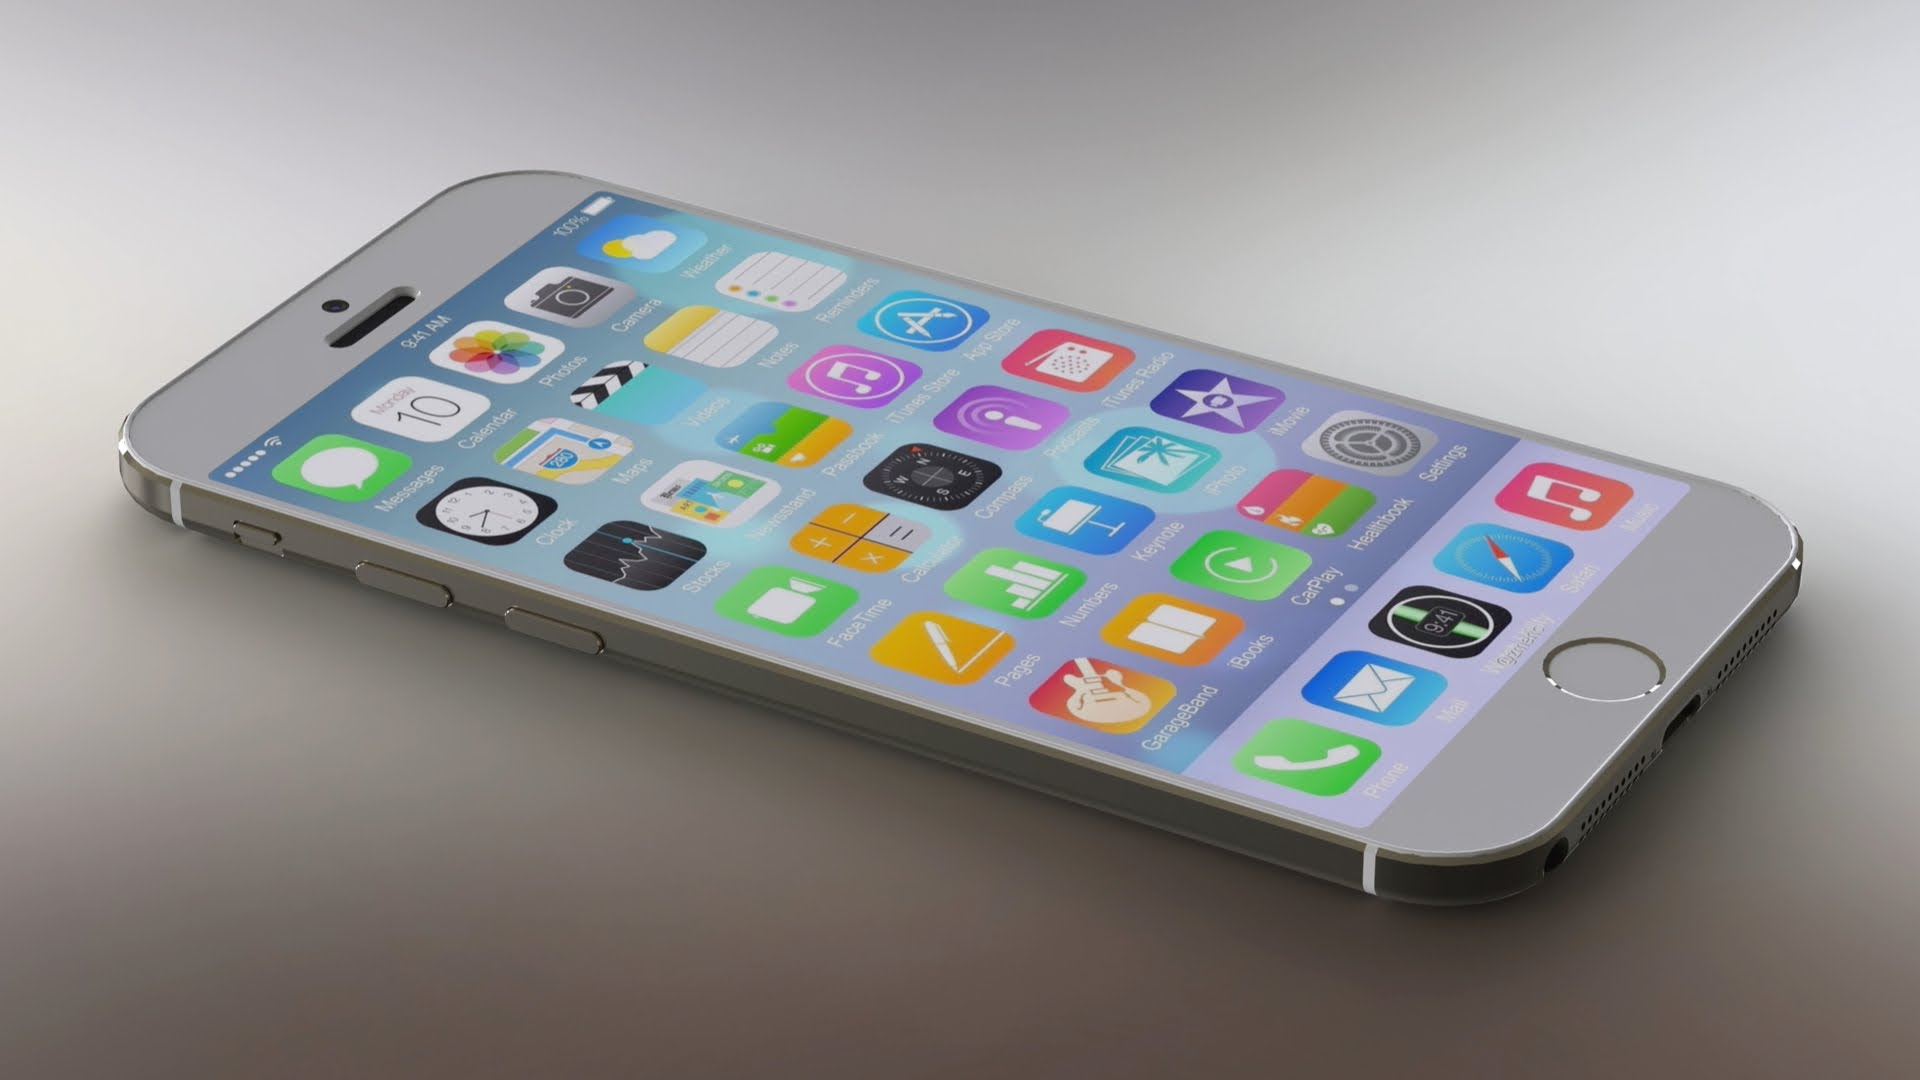 iPhone 6s to Feature 12MP Camera, A9 Chip, Rose Gold